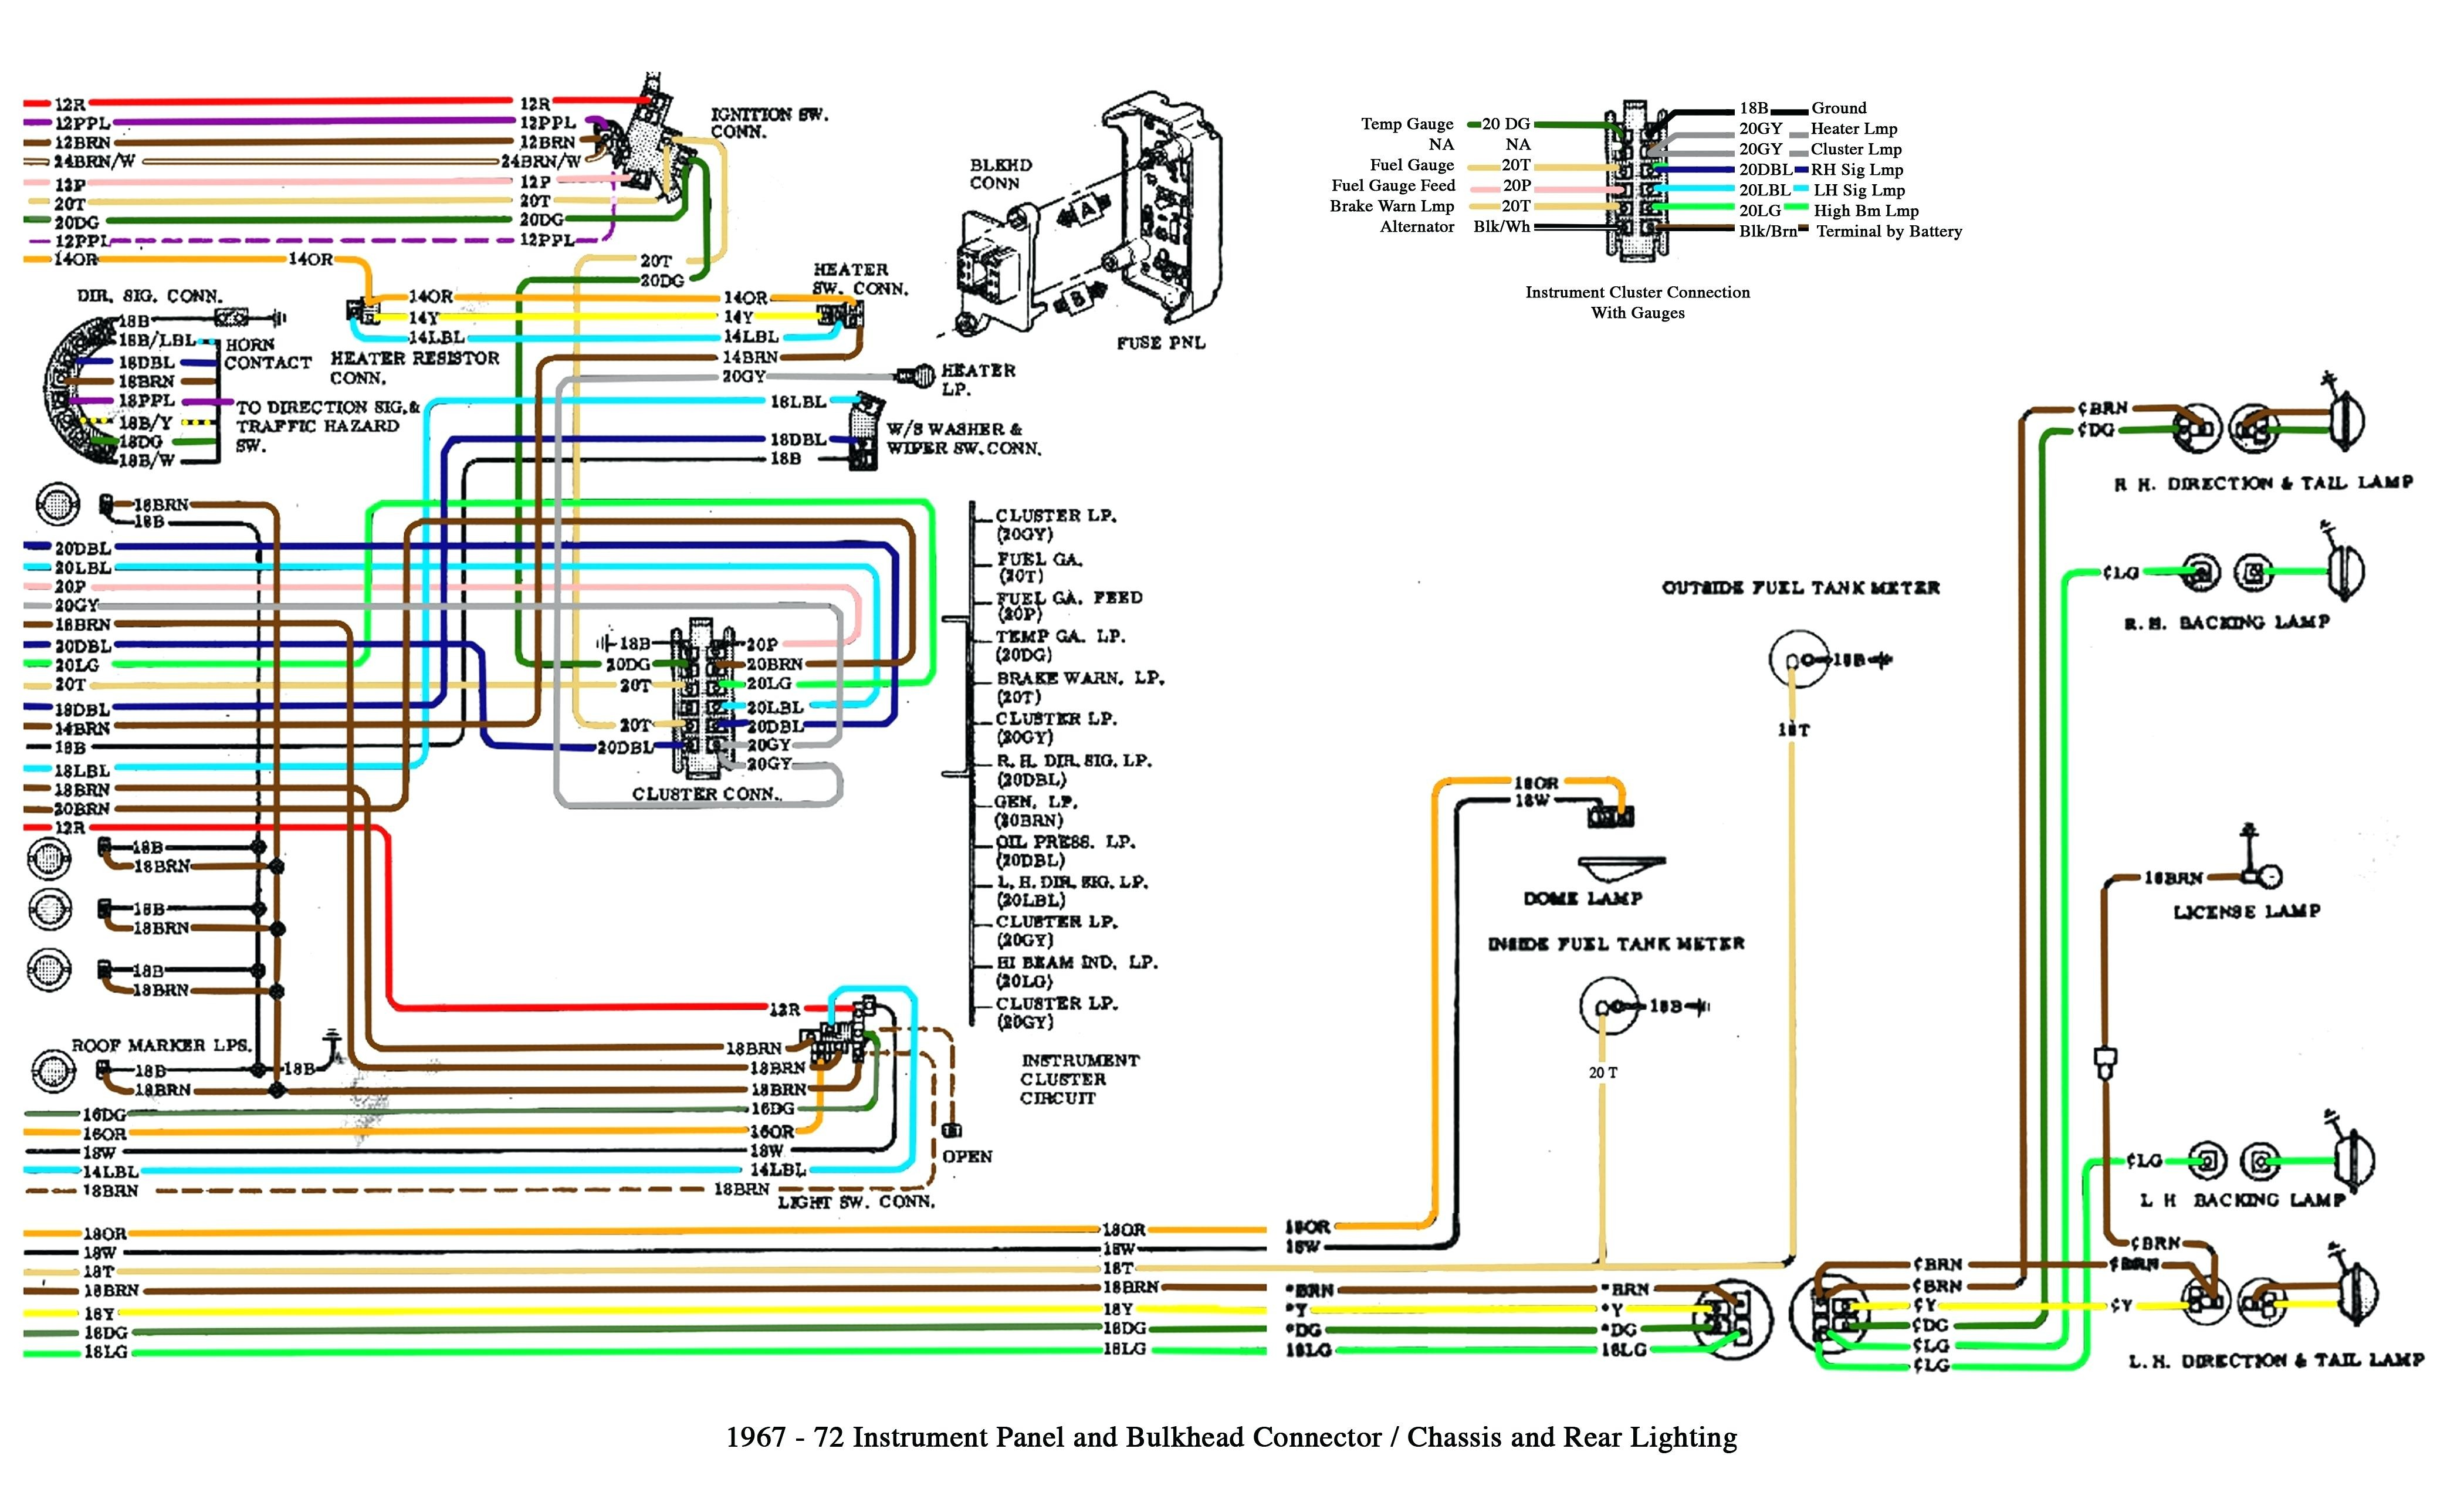 Swell 1995 Chevrolet Pick Up Wiring Diagrams Basic Electronics Wiring Wiring Cloud Staixaidewilluminateatxorg